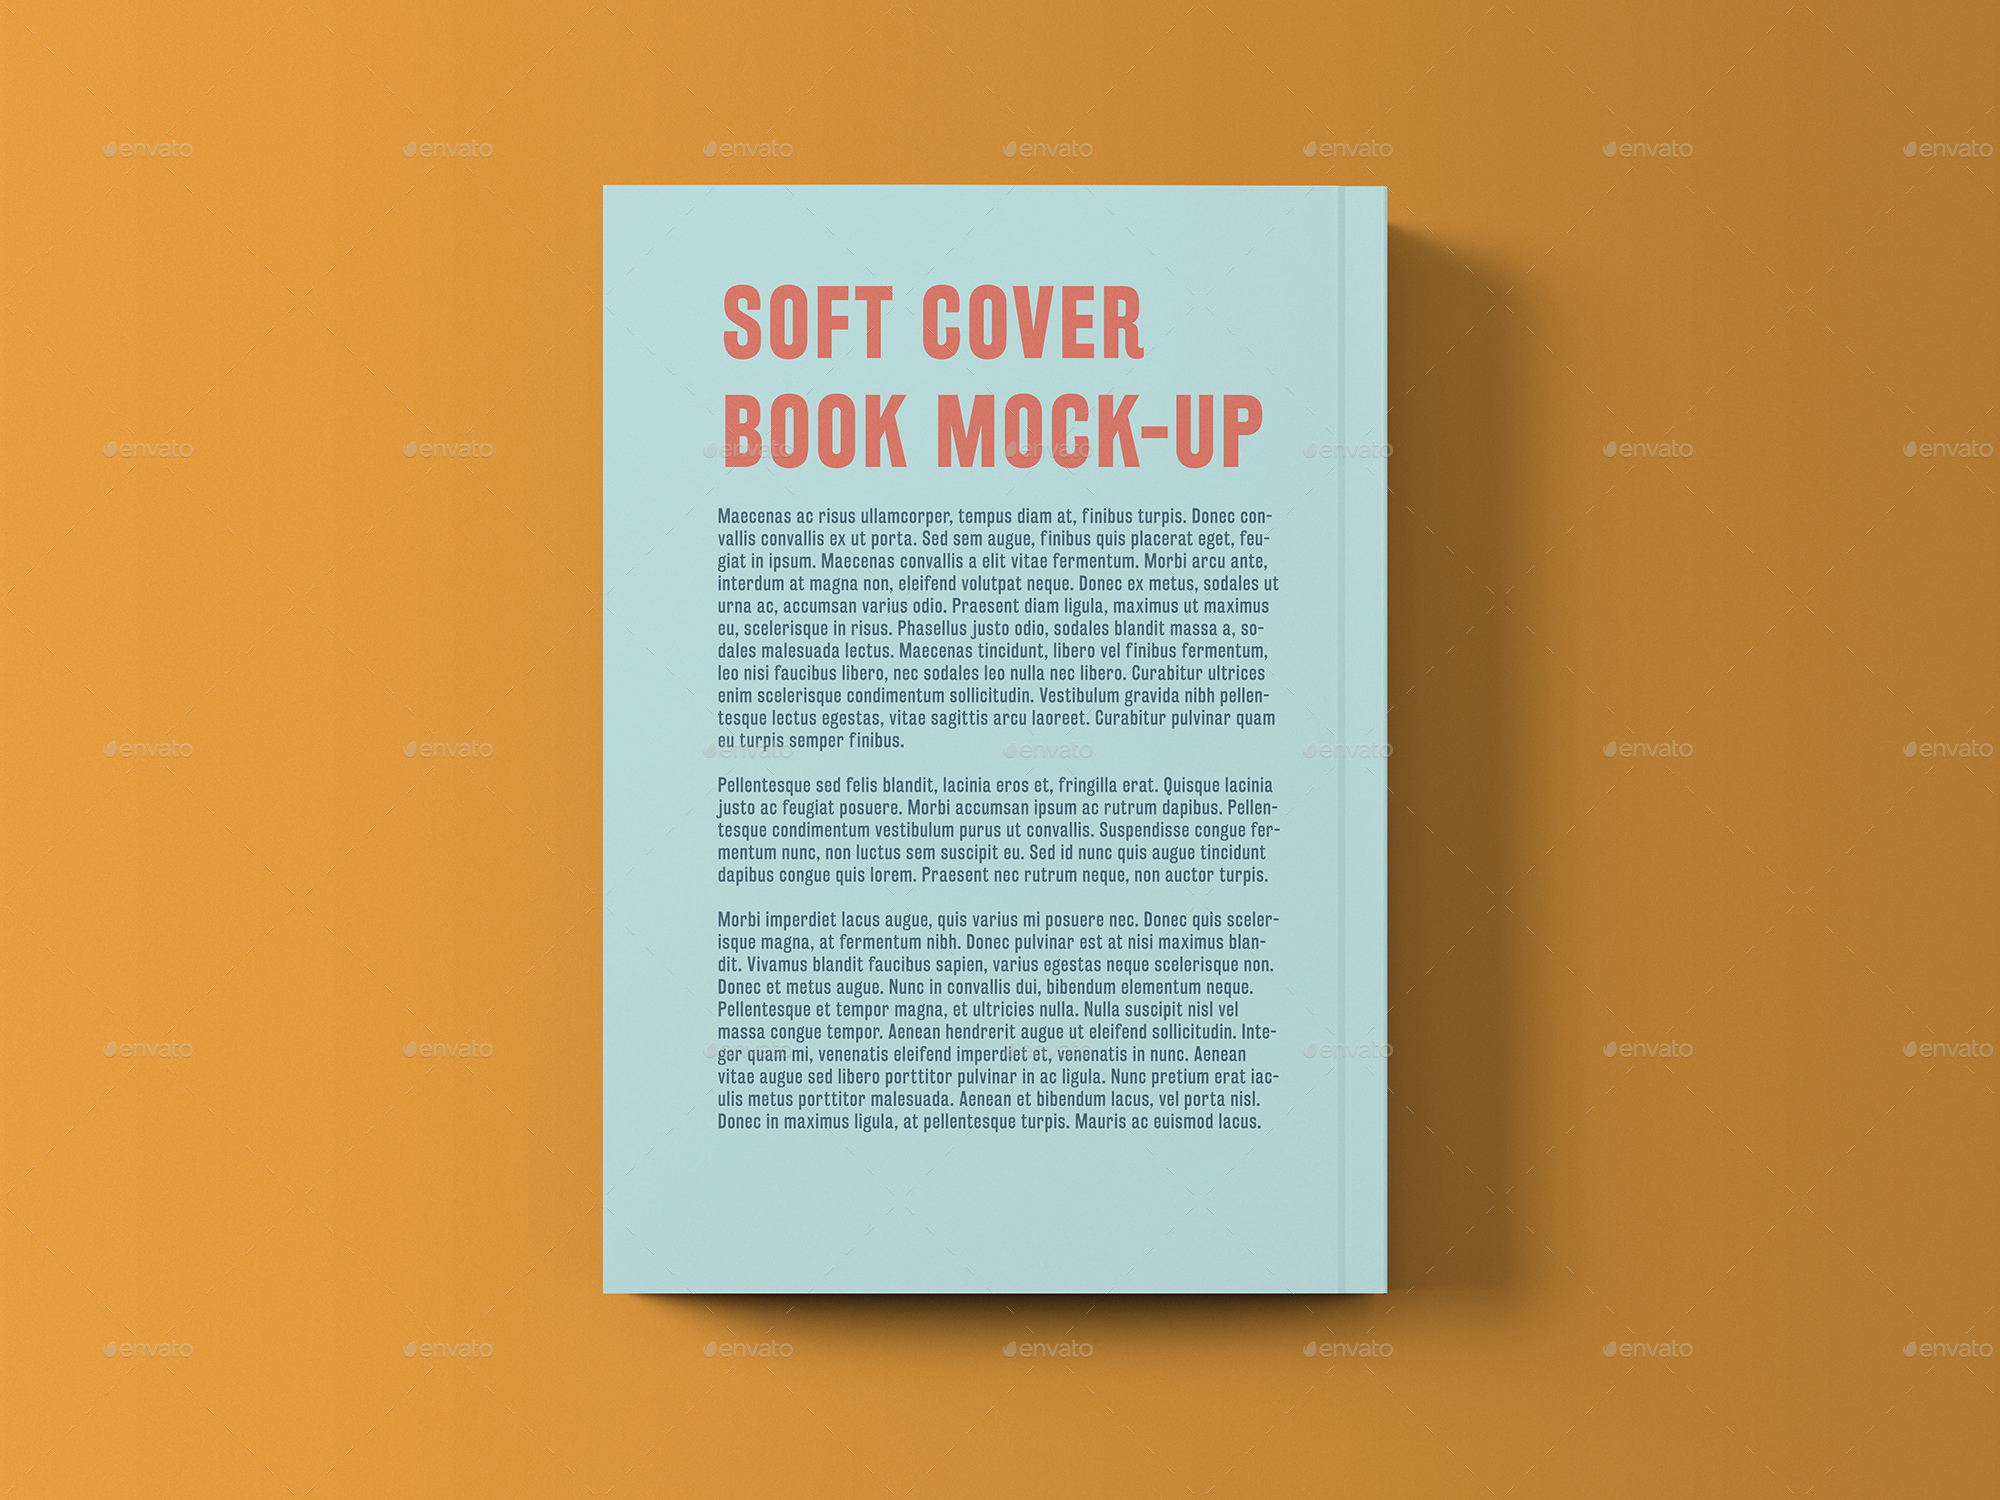 Vintage Soft Cover Book Mock Up : Soft cover book with foil stamping mock up by professorinc